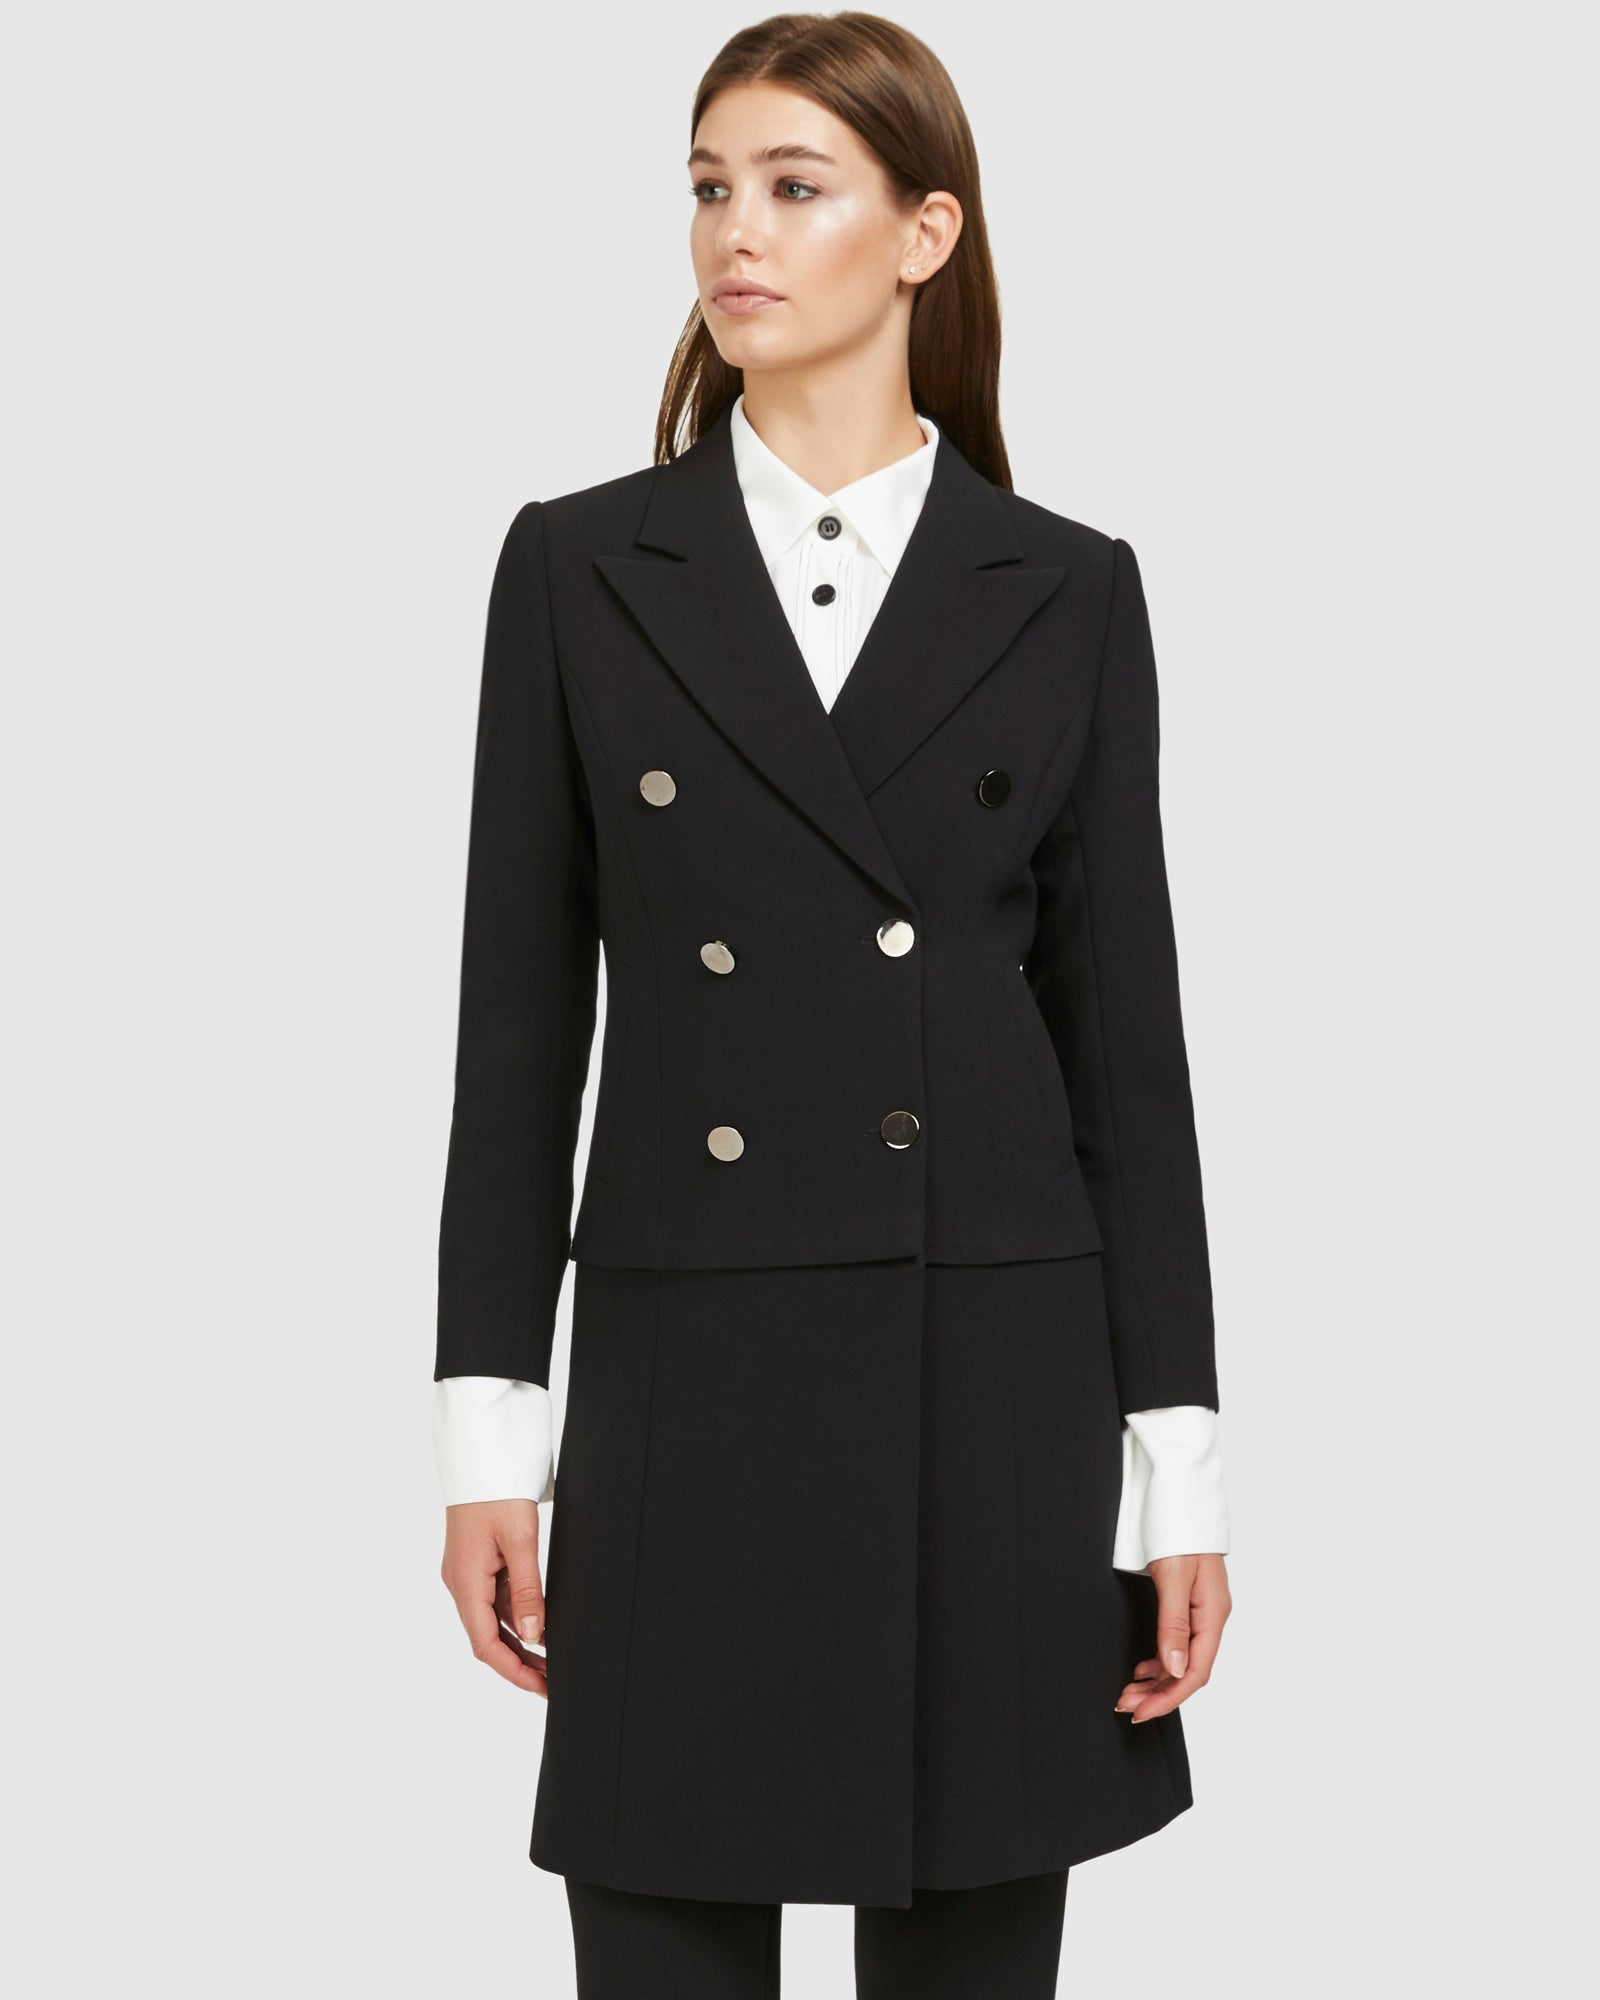 Convertible Blazer Coat - Suiting